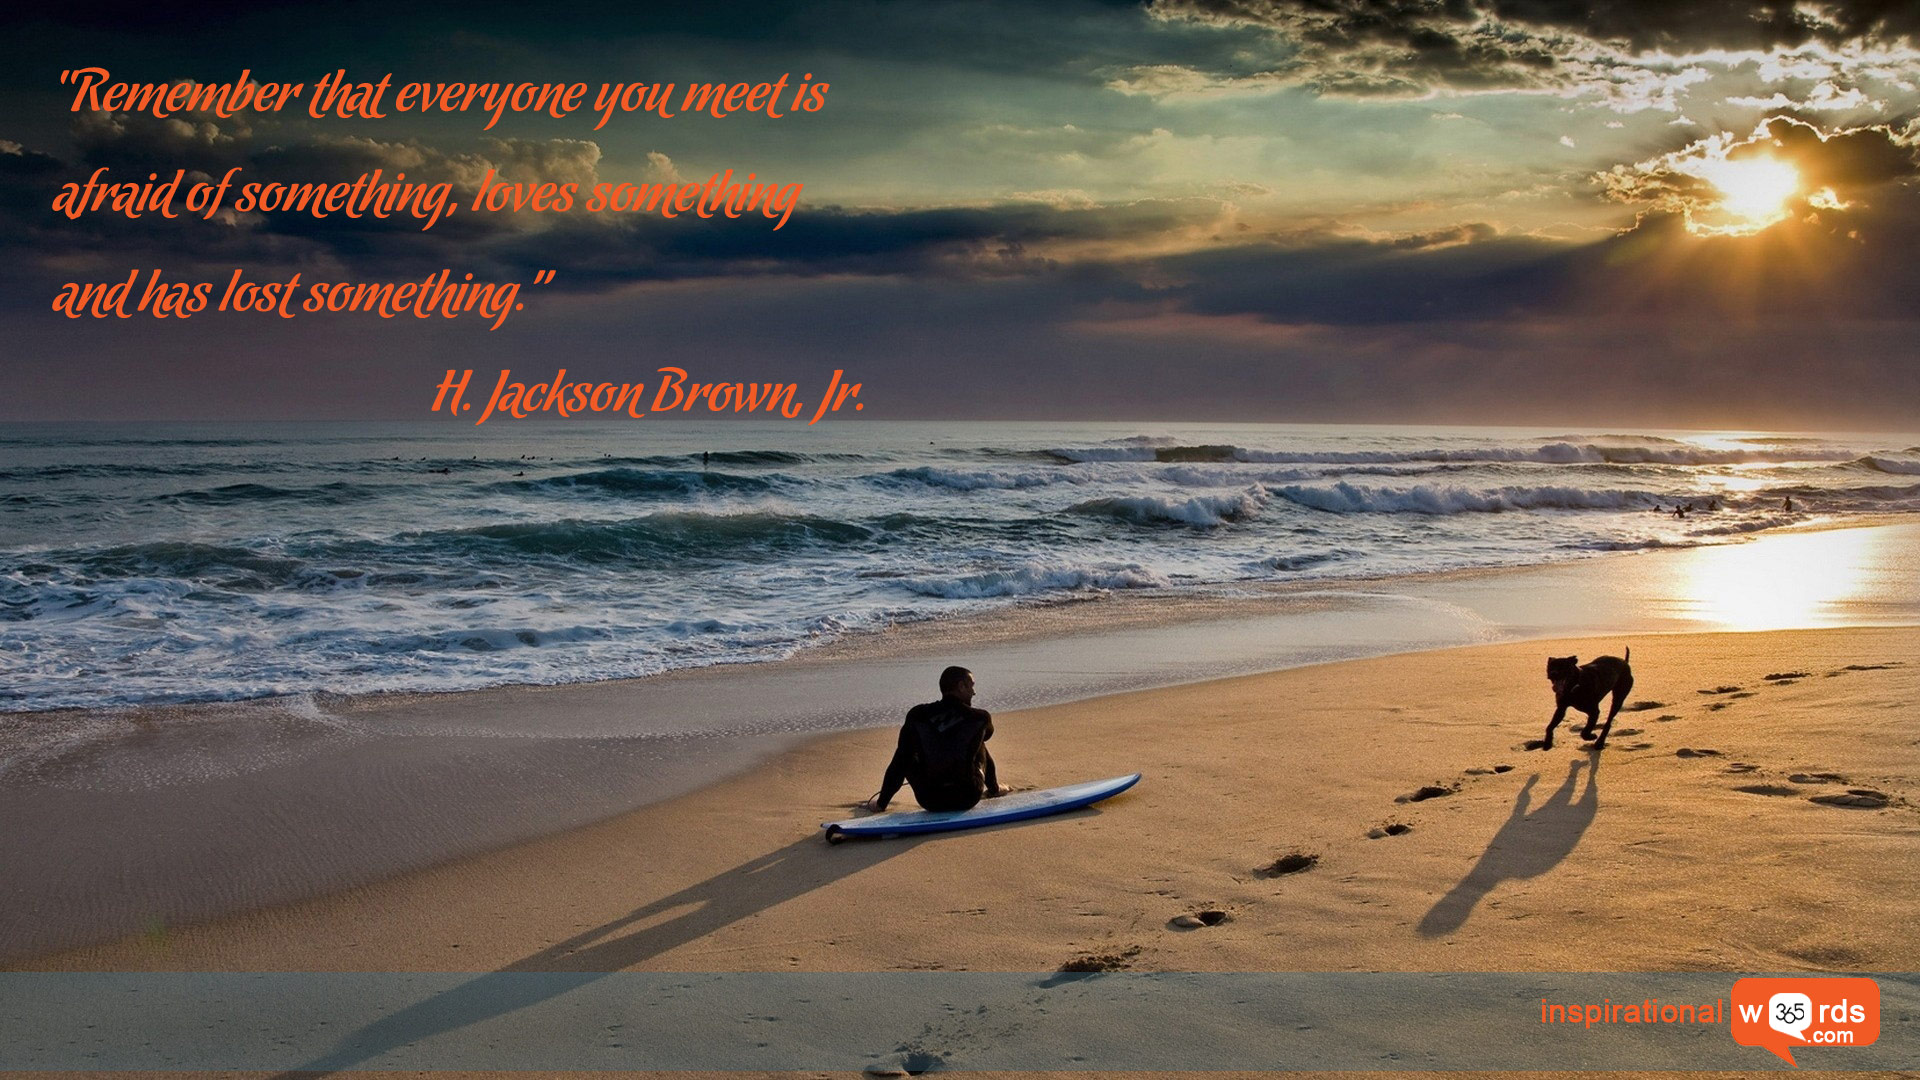 Inspirational Wallpaper Quote by H. Jackson Brown, Jr.